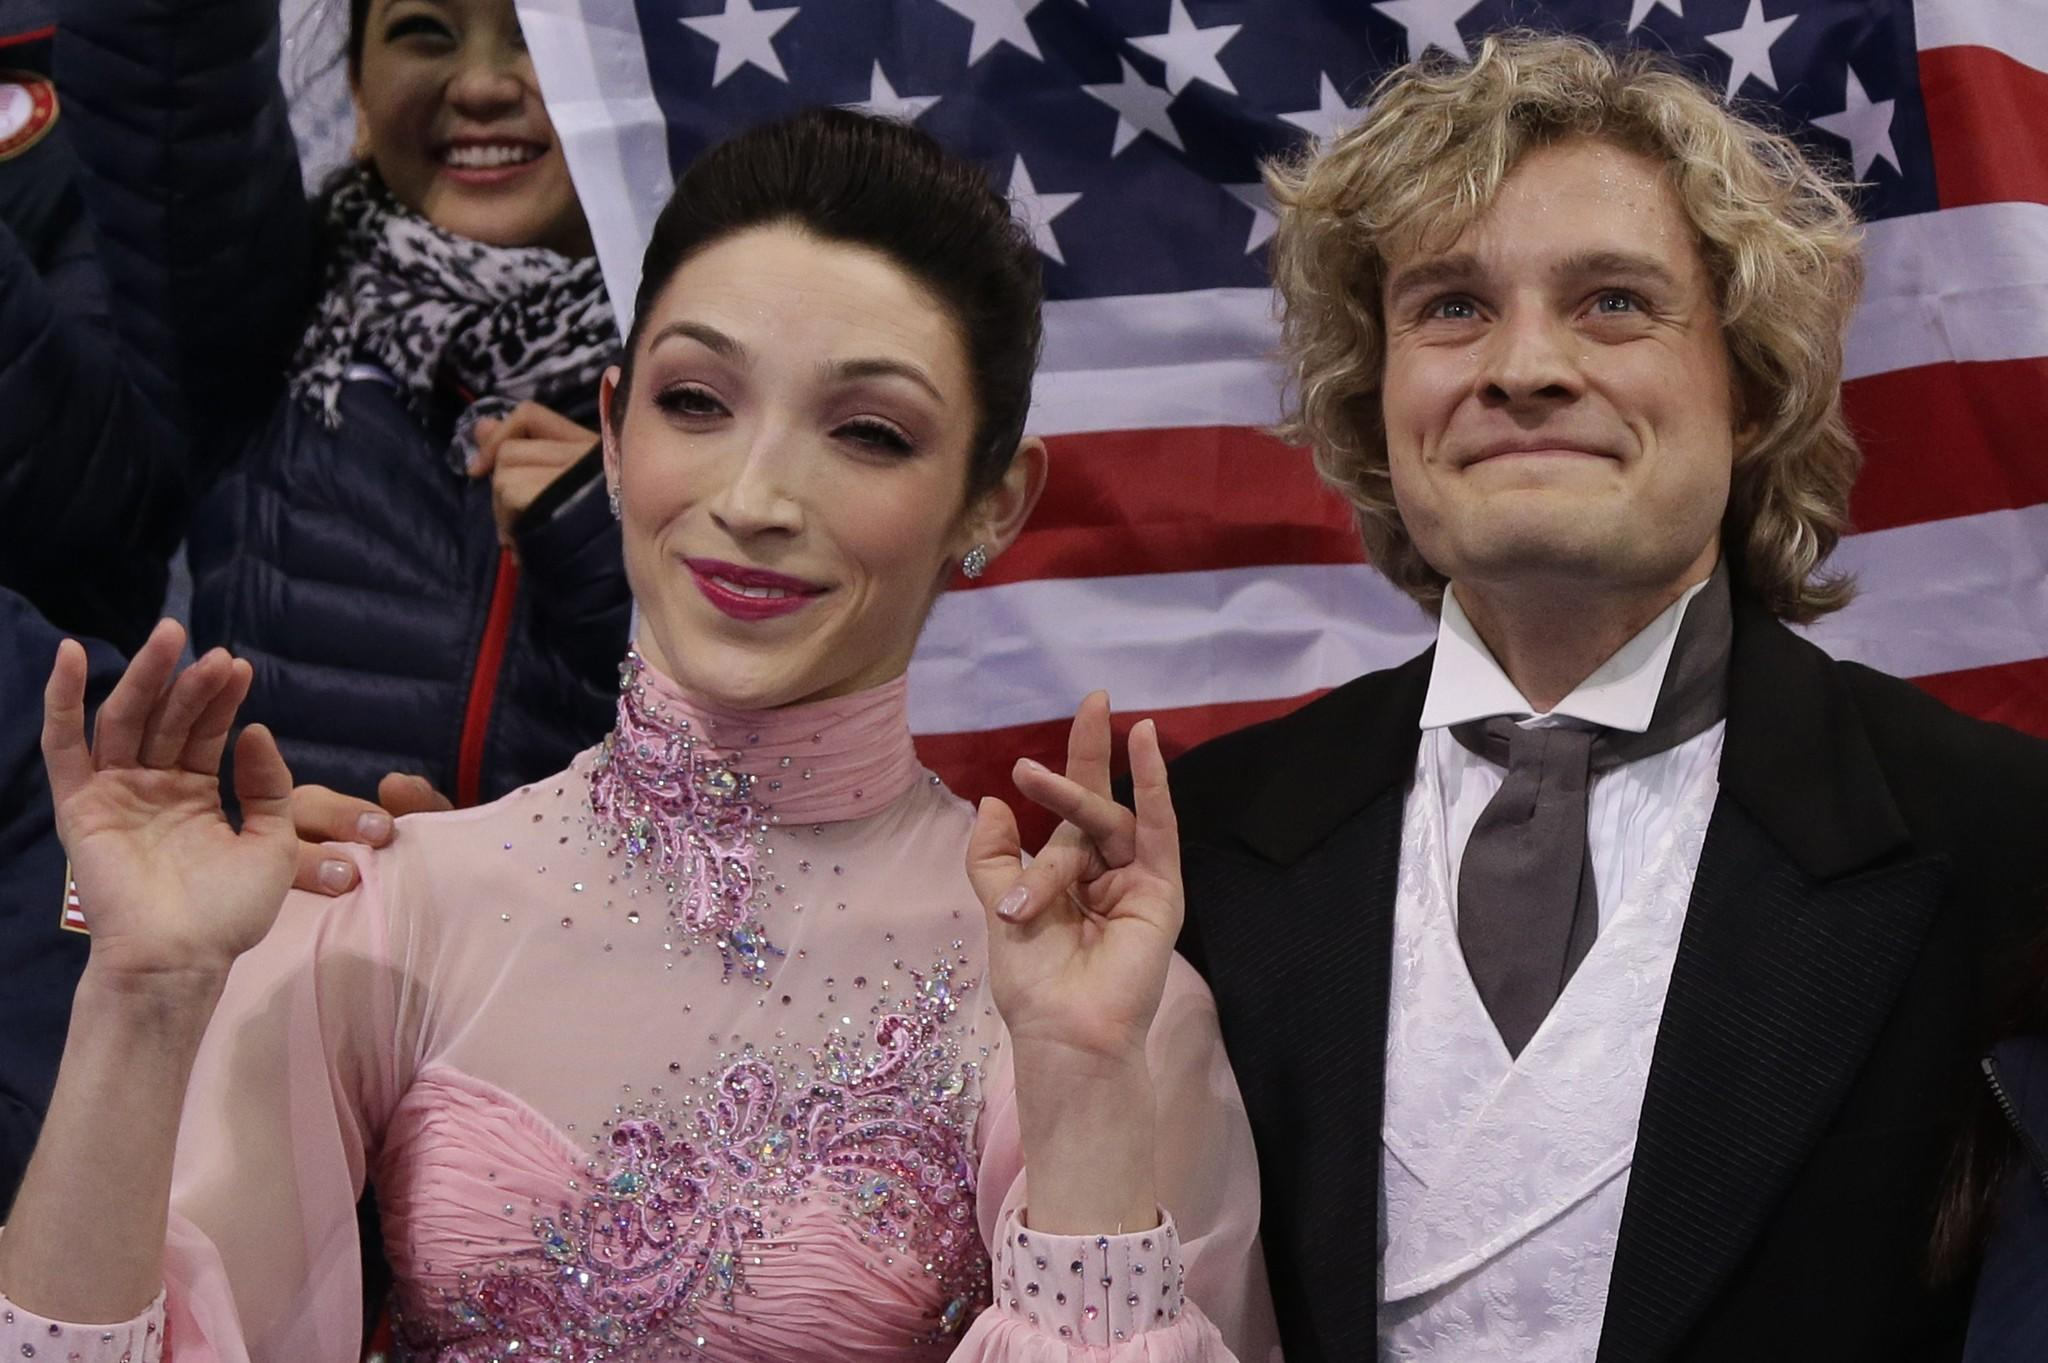 Meryl Davis (left) and Charlie White celebrate after performing in the Figure Skating Team Ice Dance Short Dance at the Iceberg Skating Palace.